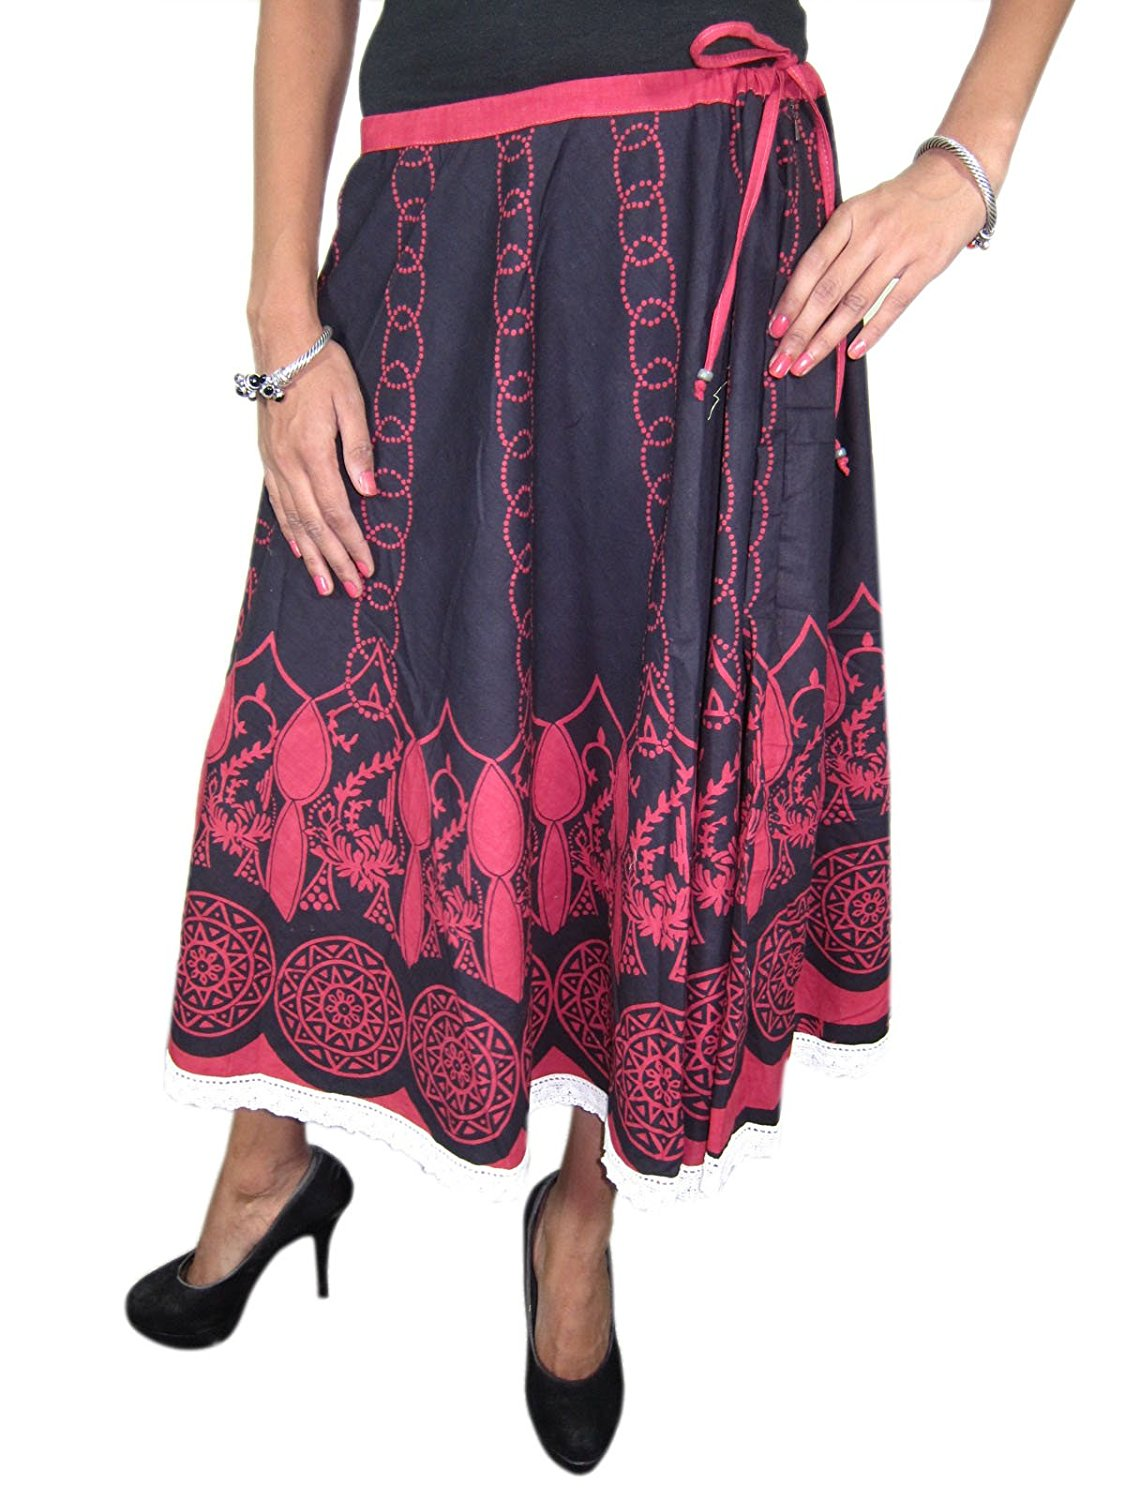 6947aa626 Get Quotations · Women's Peasant Skirt Black Pink Cotton Tribal Printed  Gypsy Flared Skirts